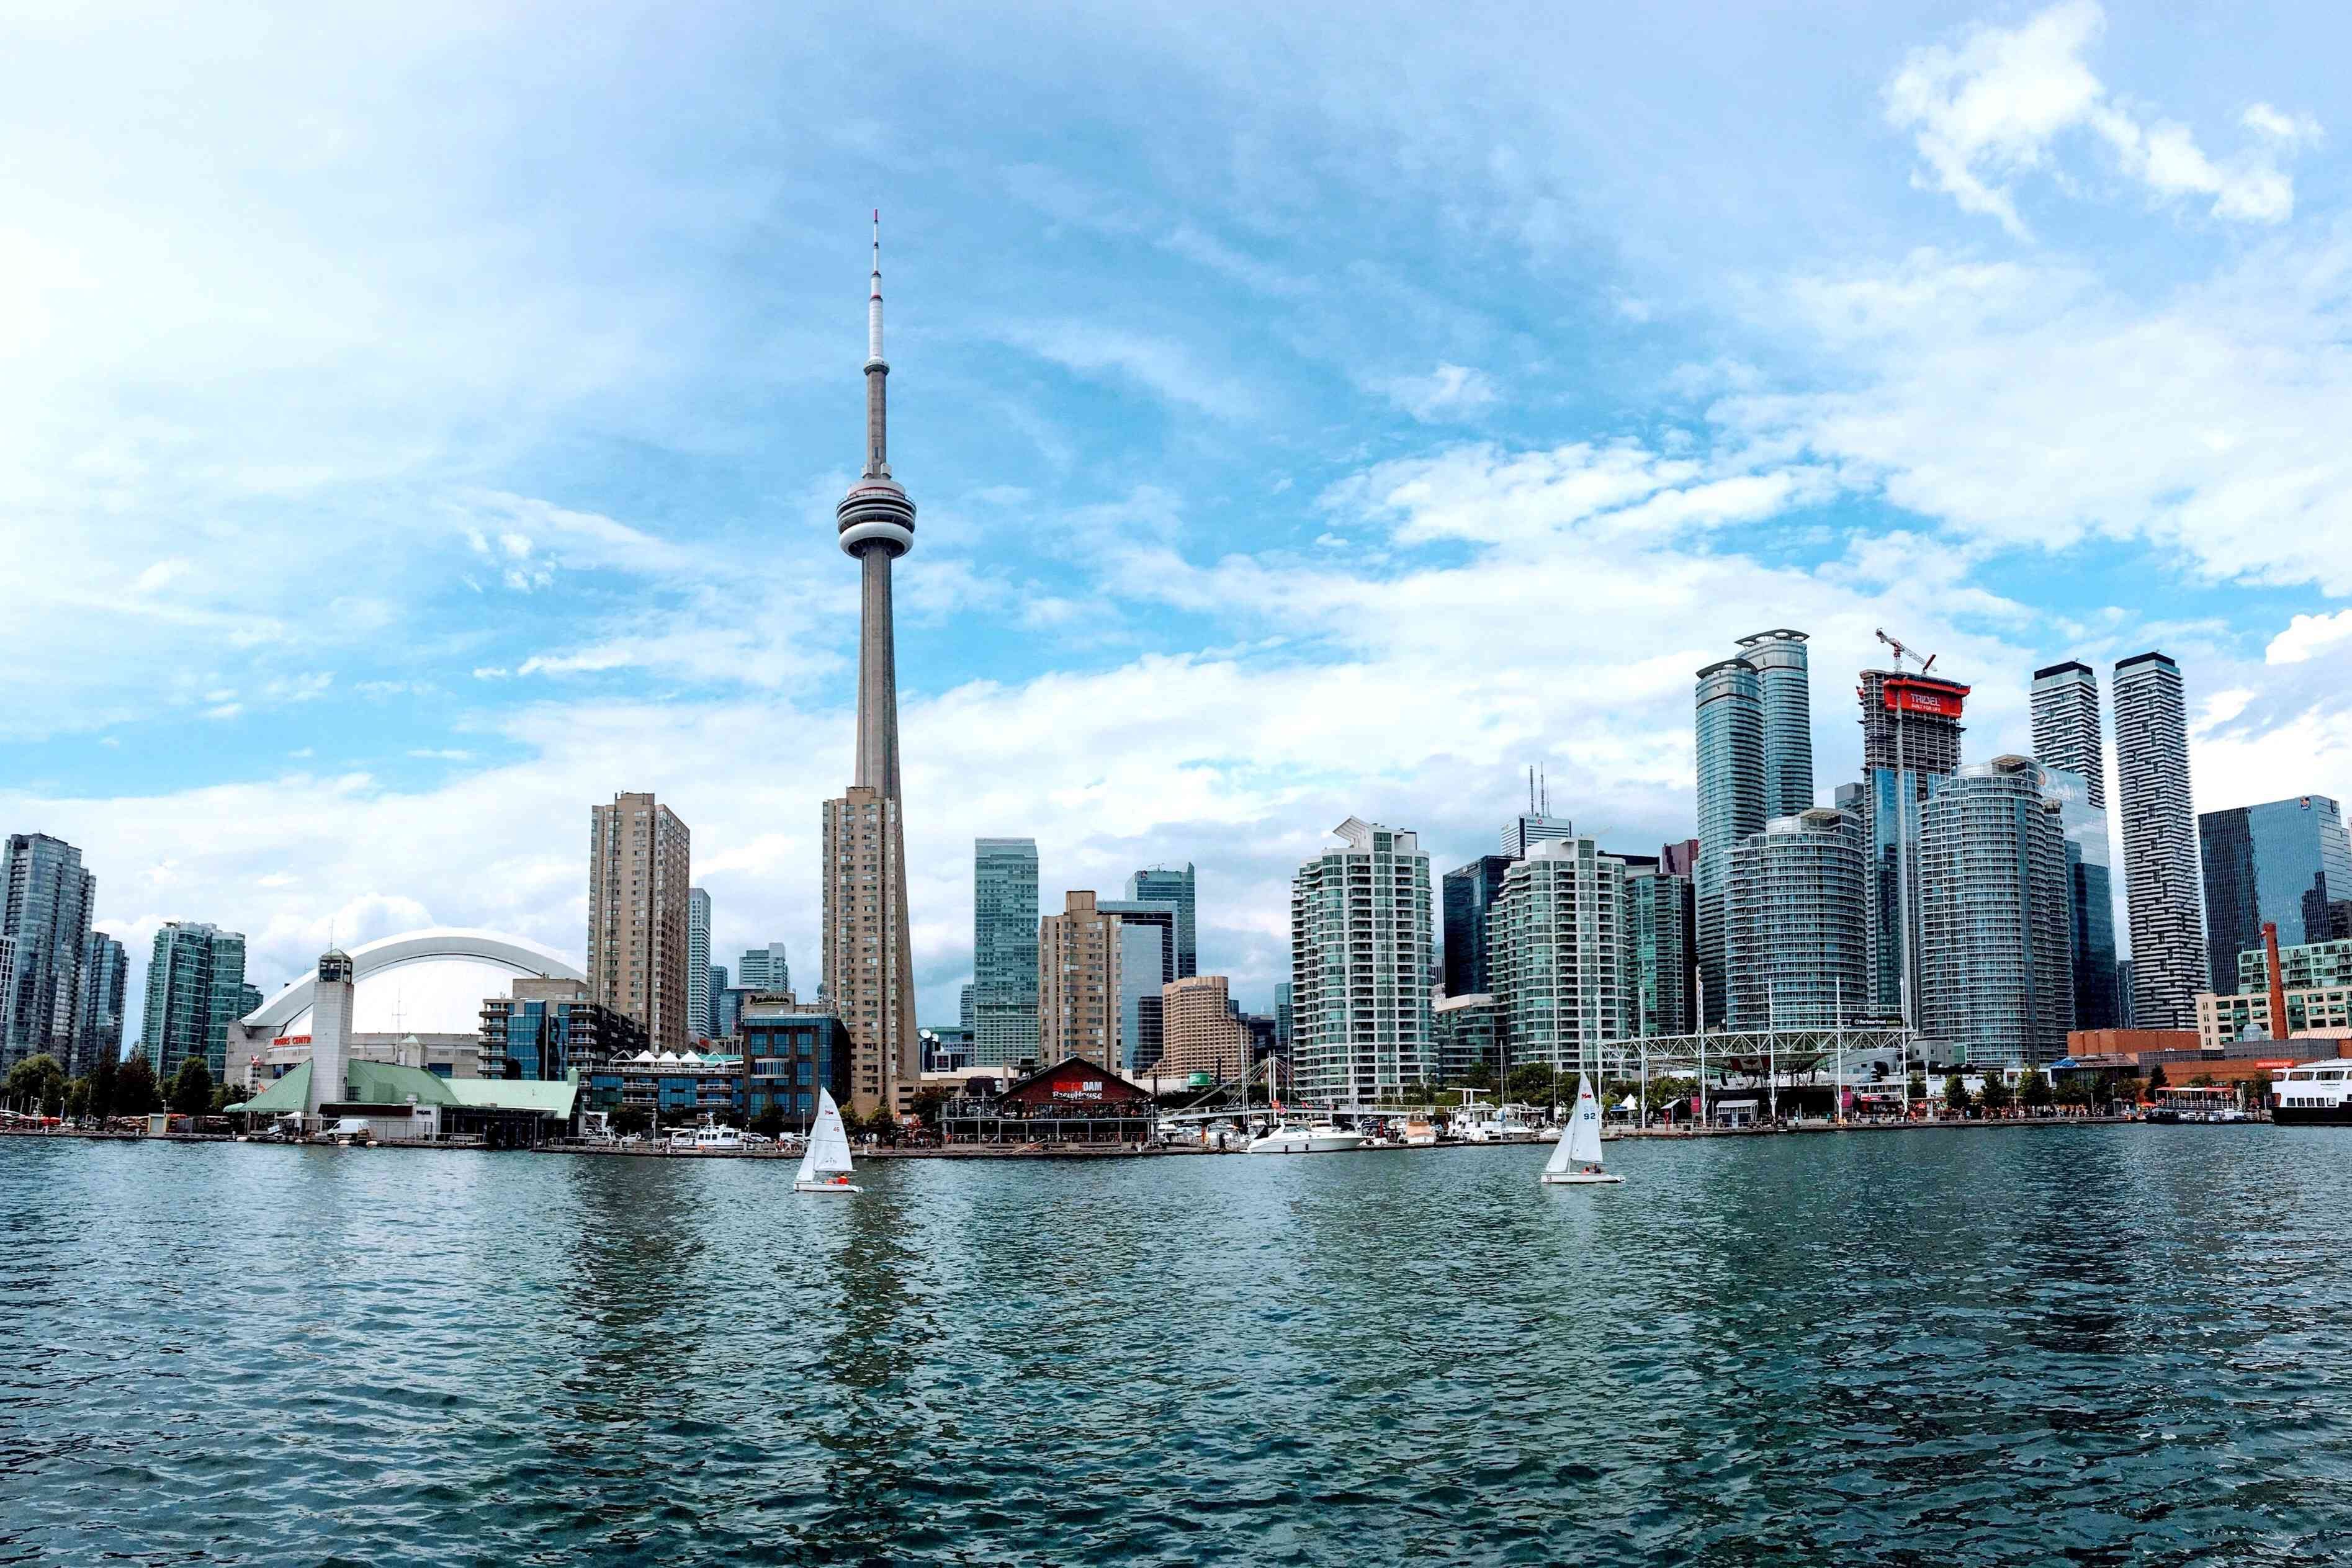 The skyline at the Toronto waterfront